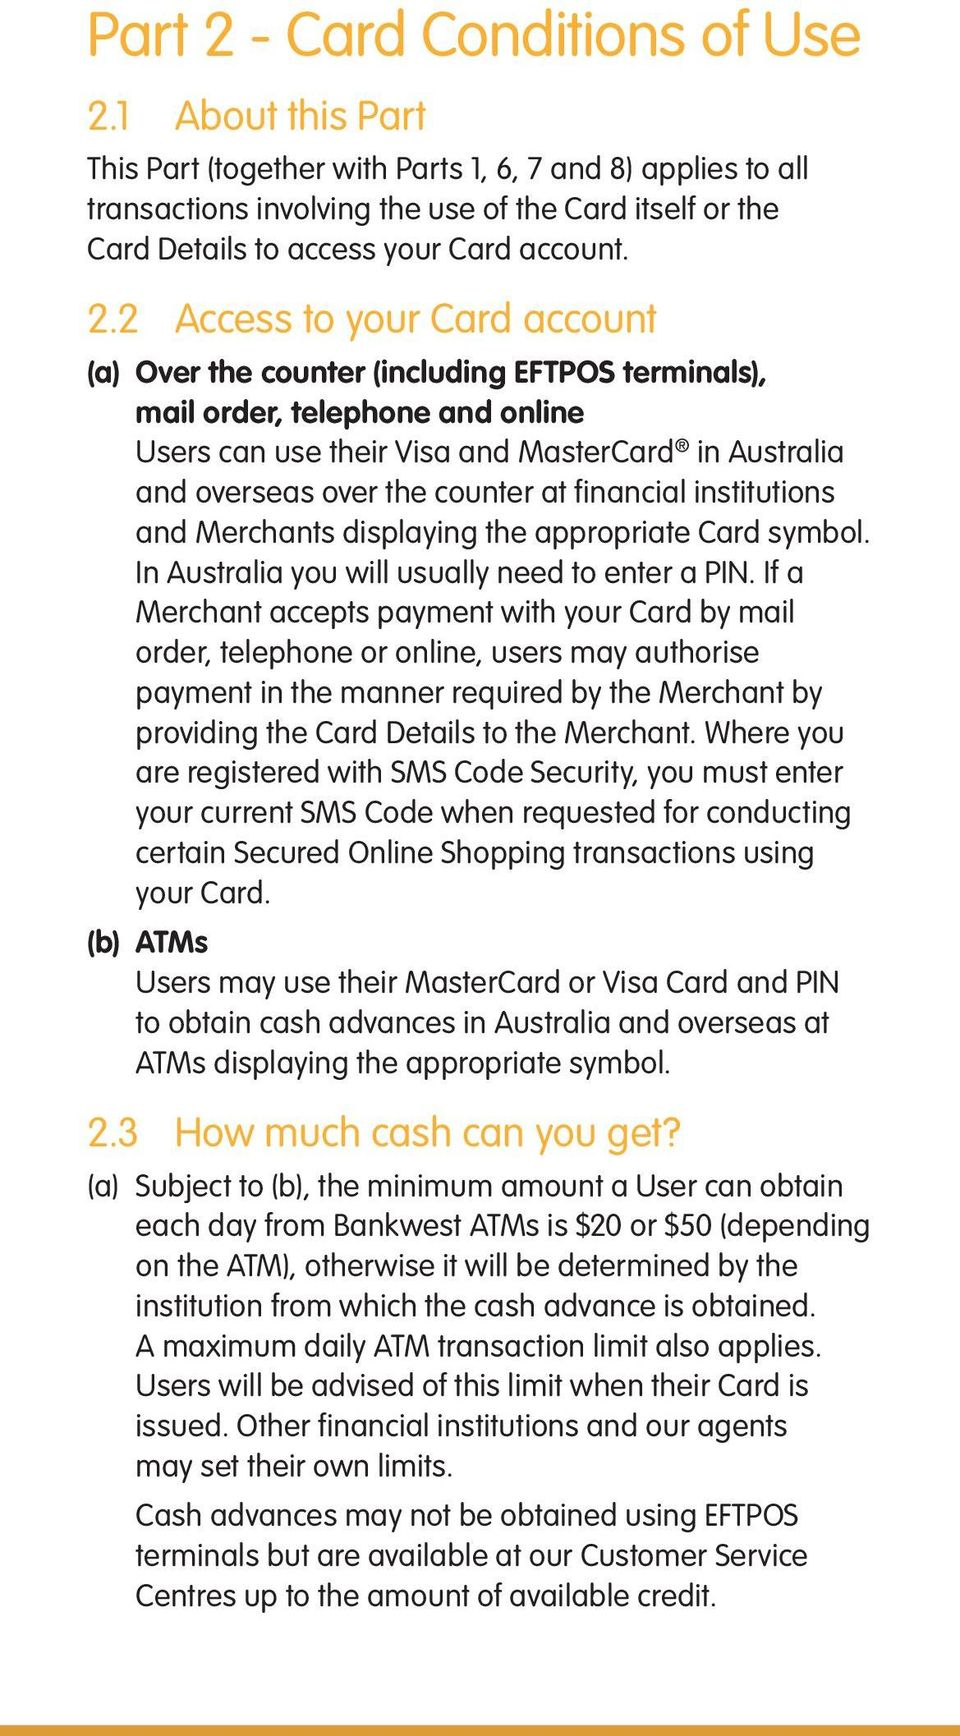 2 Access to your Card account (a) Over the counter (including EFTPOS terminals), mail order, telephone and online Users can use their Visa and MasterCard in Australia and overseas over the counter at